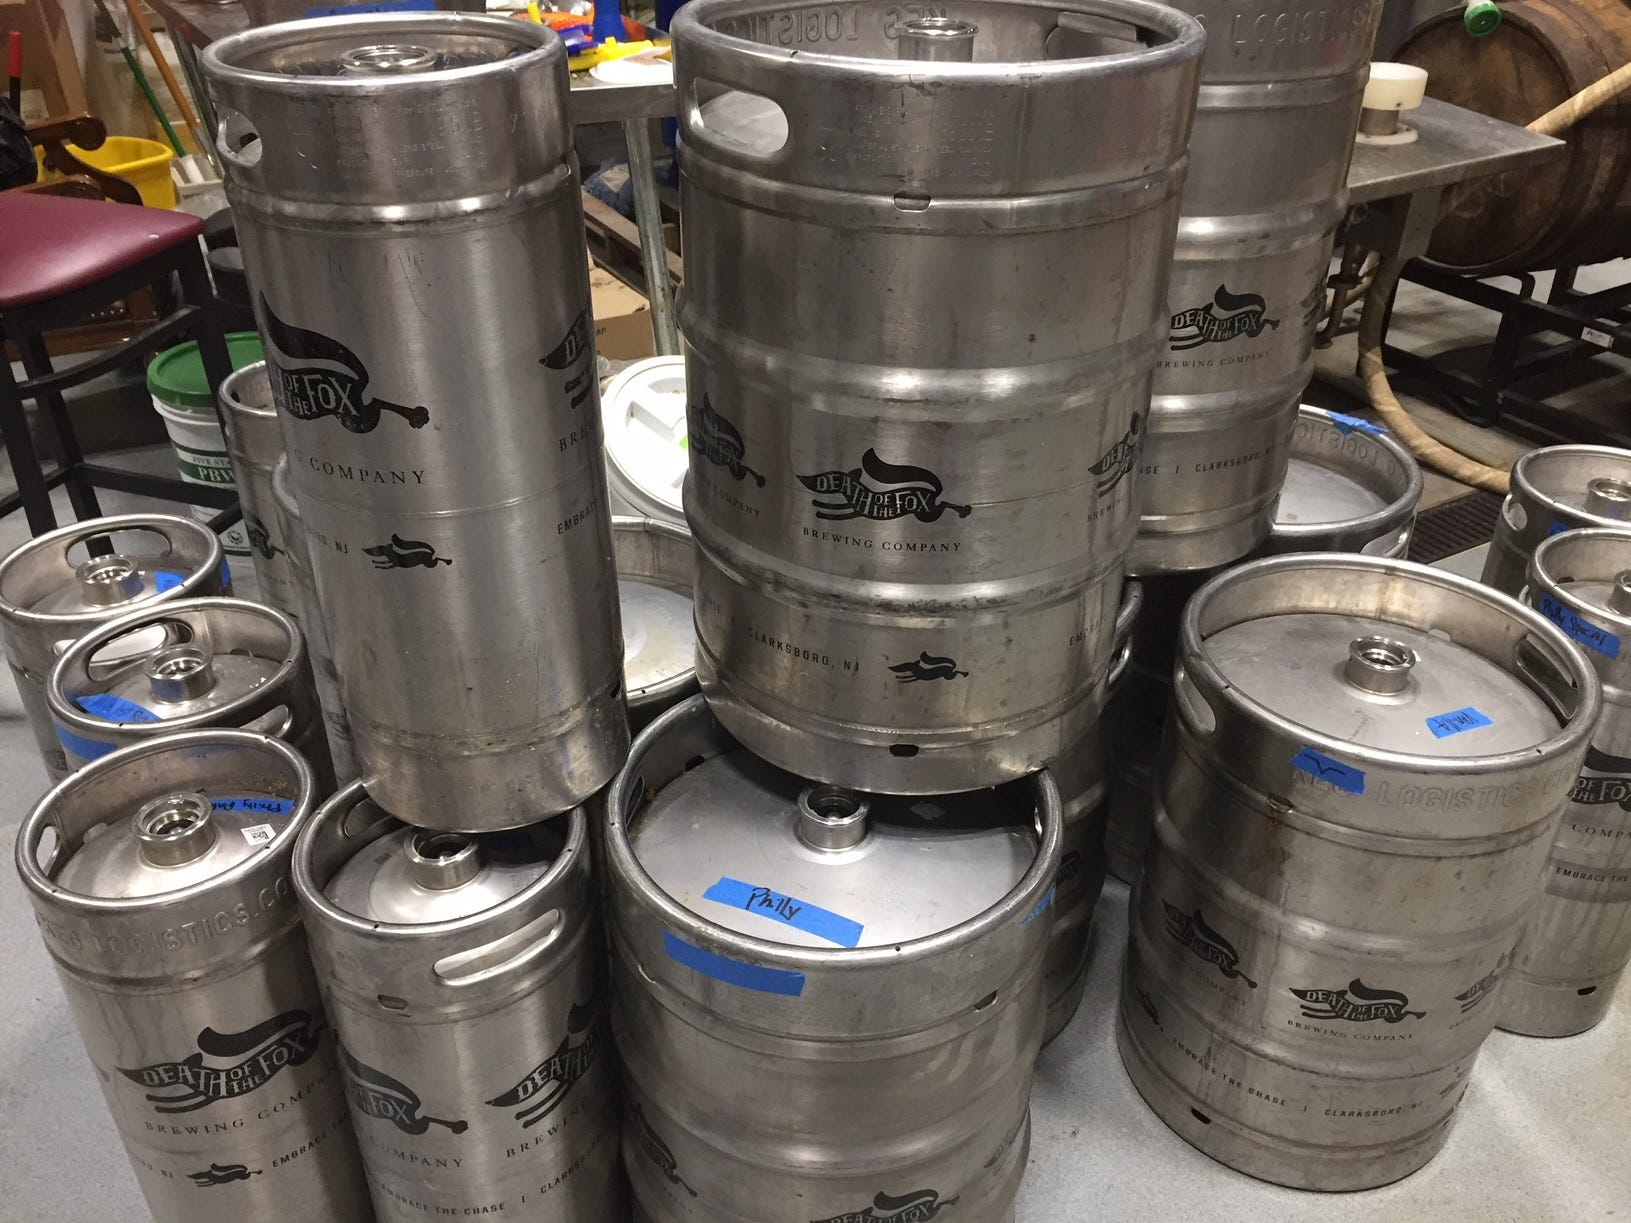 Kegs of Death of the Fox stand stacked in the brewing area of the East Greenwich Township brewery and coffee house. The brewery serves in the tasting room daily, as well making their beer available to bars and restaurants.